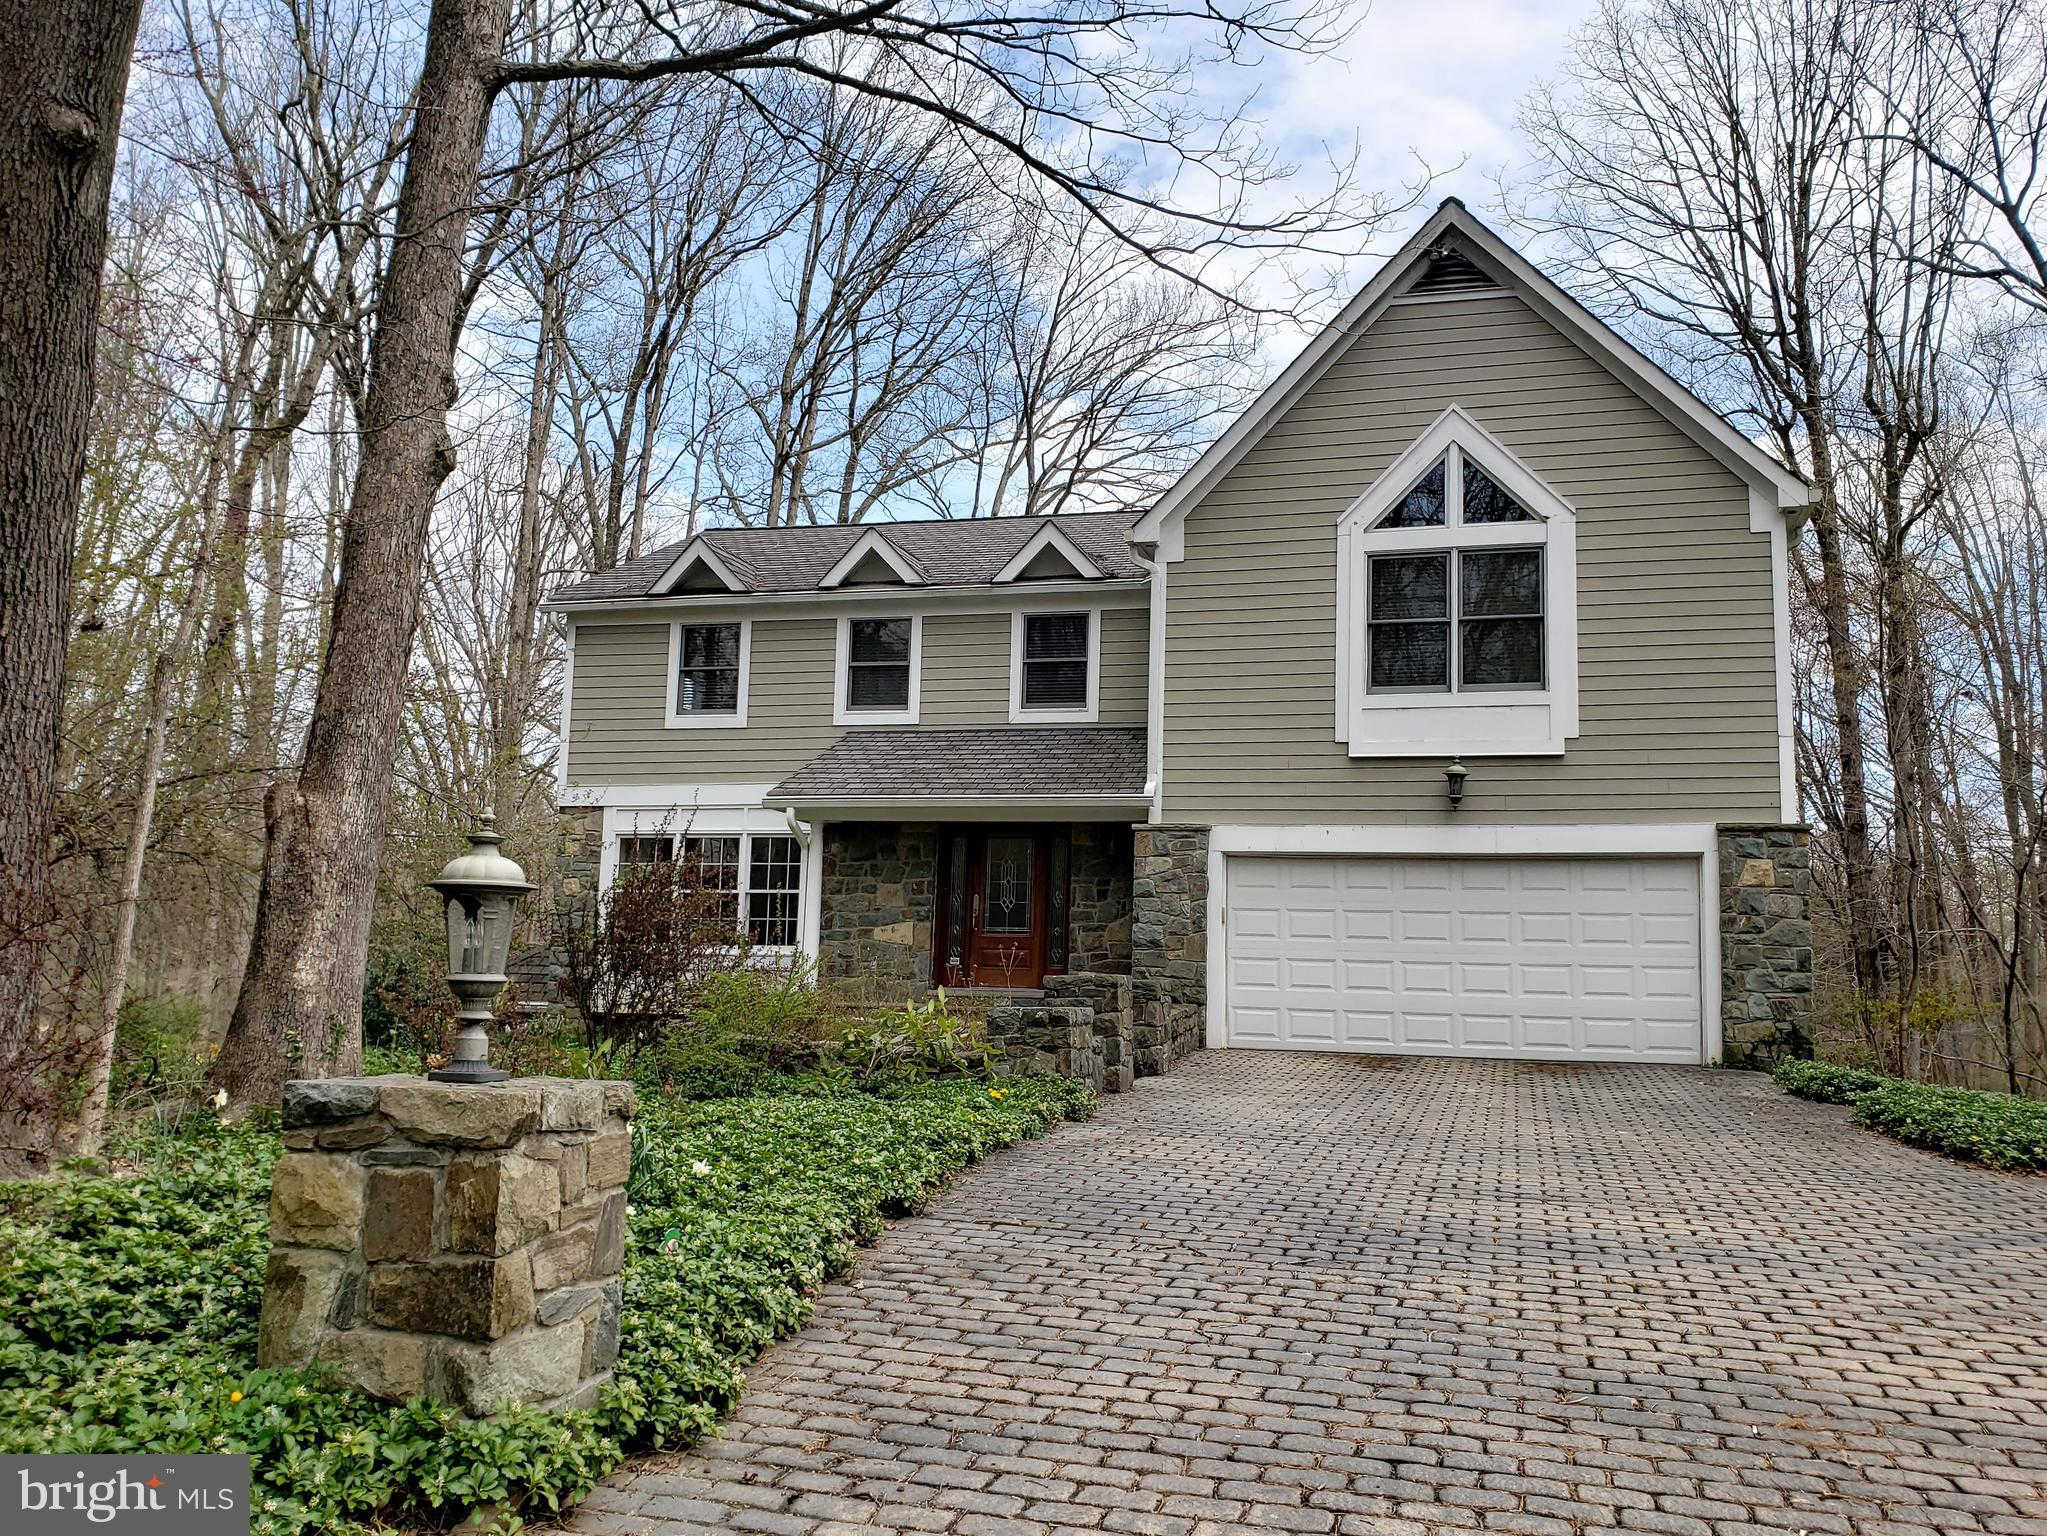 1839 Post Oak Trail, Reston, VA 20191 is now new to the market!